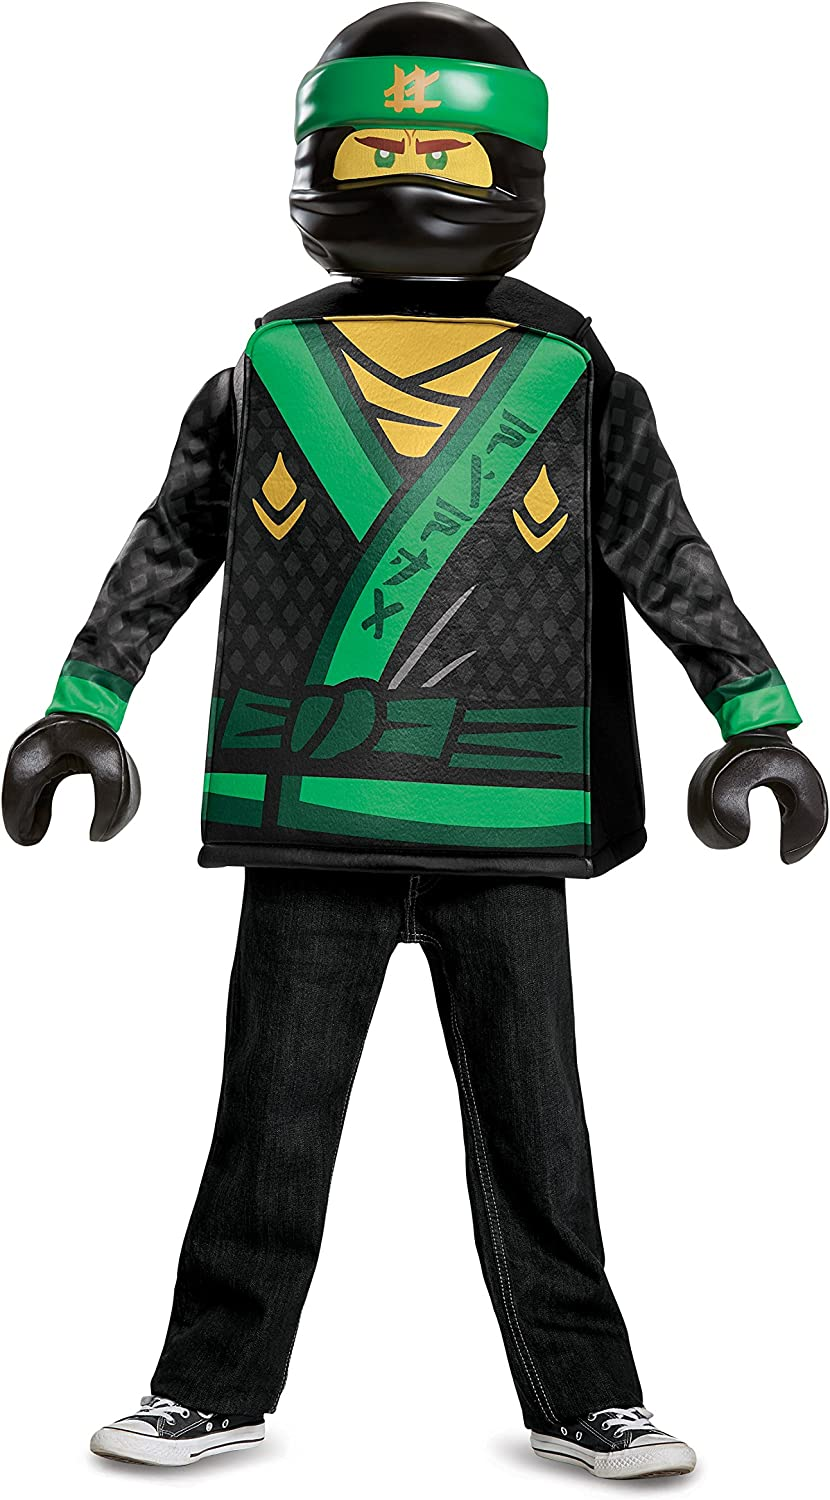 Disguise Costumes Lloyd Lego Ninjago Movie Classic Costume, Green, Large (1012)